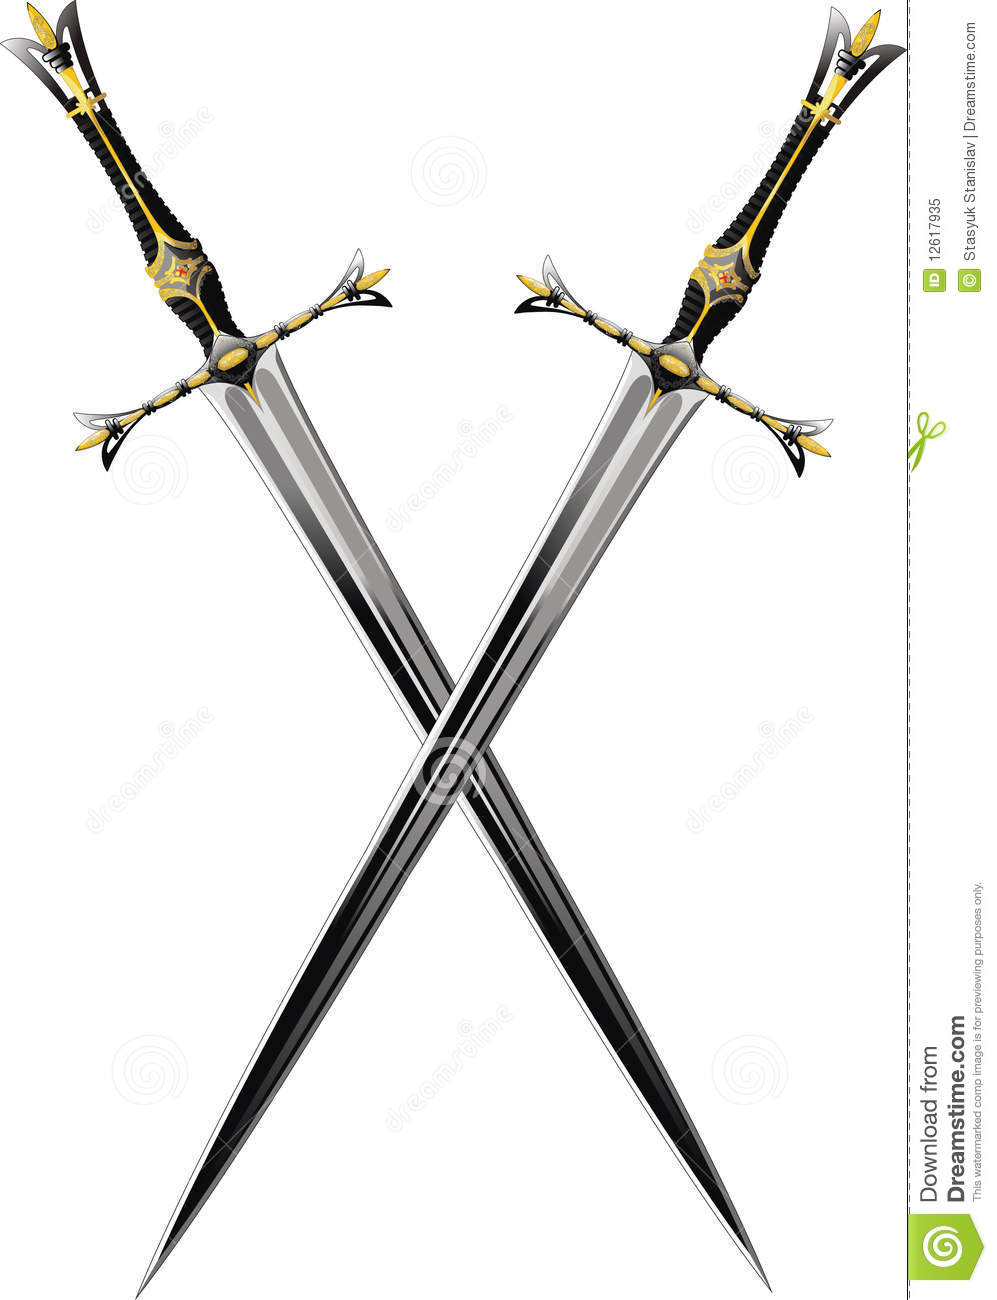 Two crossed swords stock vector. Illustration of object ...